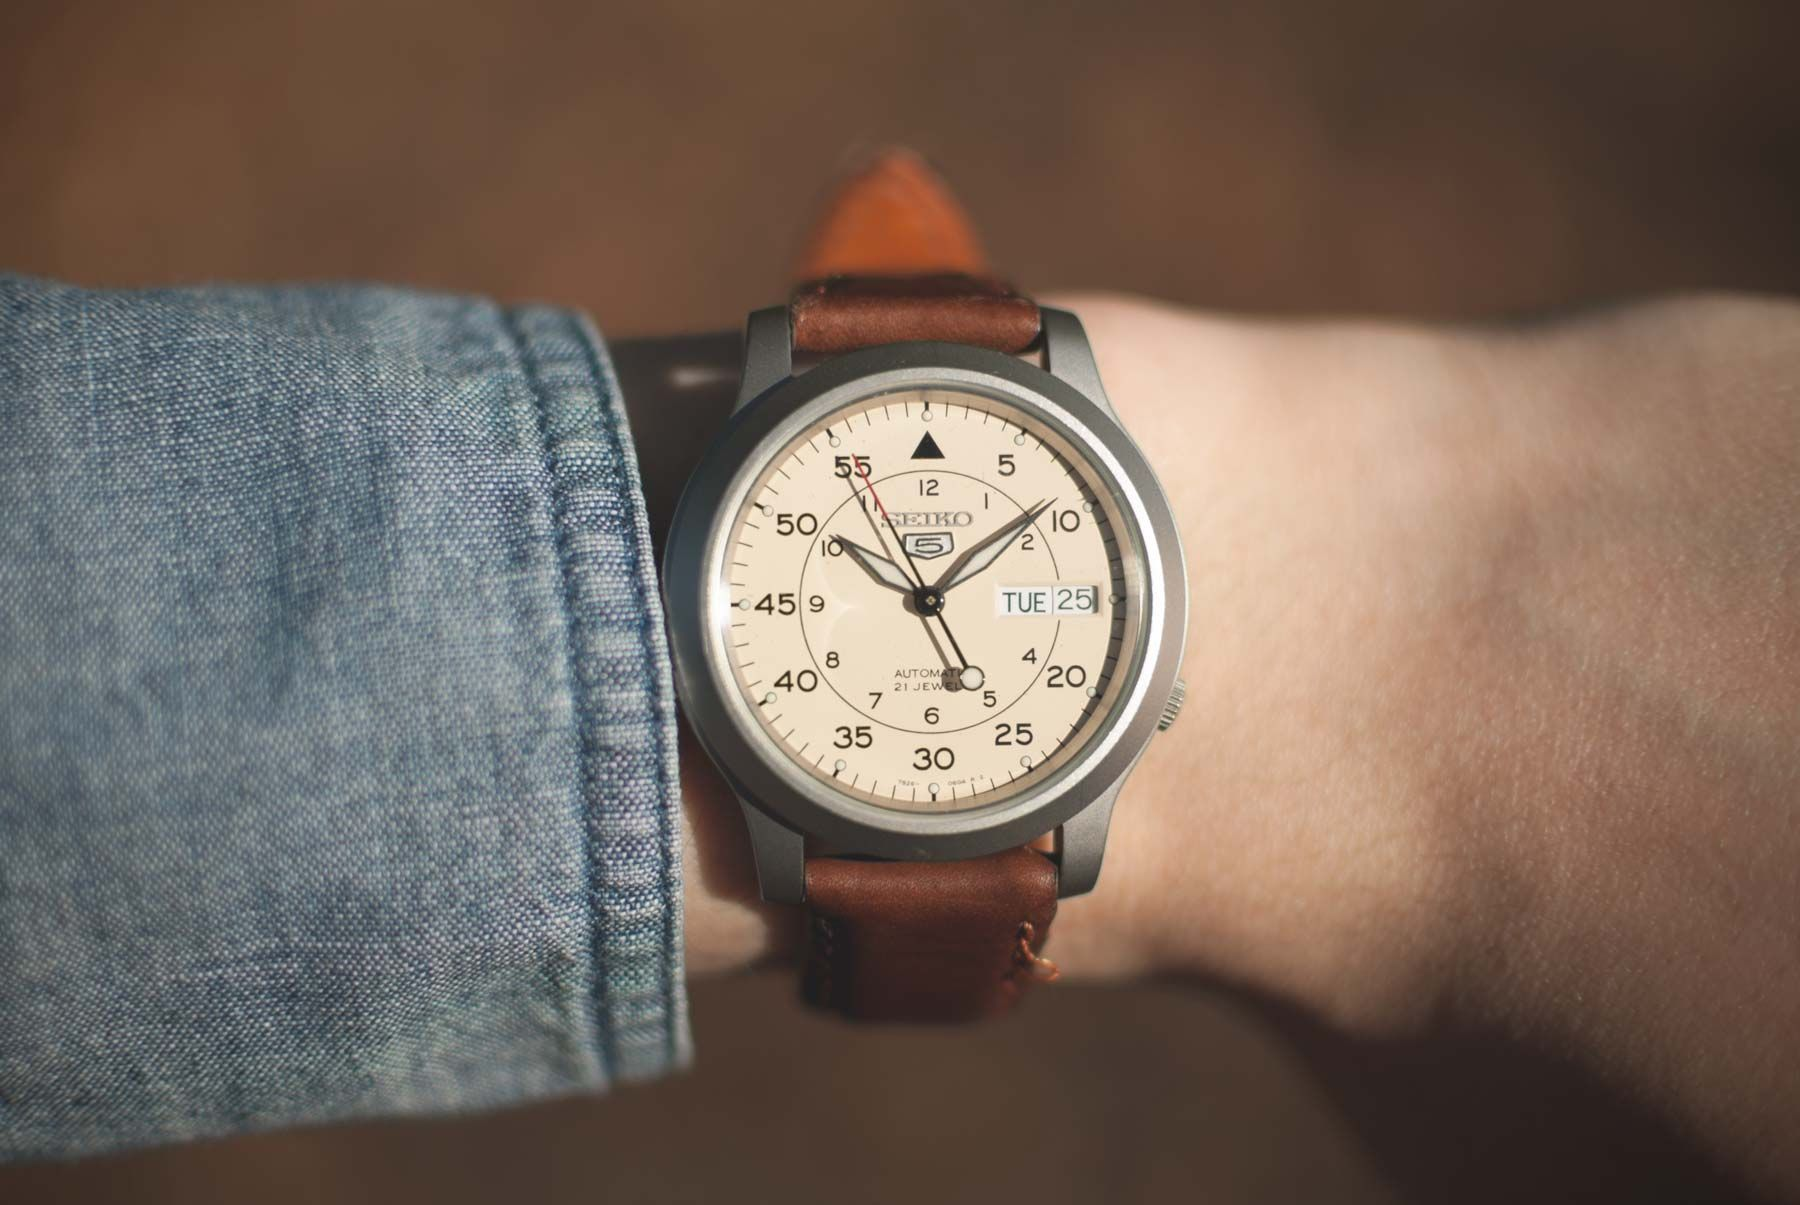 374dbba0c84 Seiko 5 military automatic watch review Retro Watches